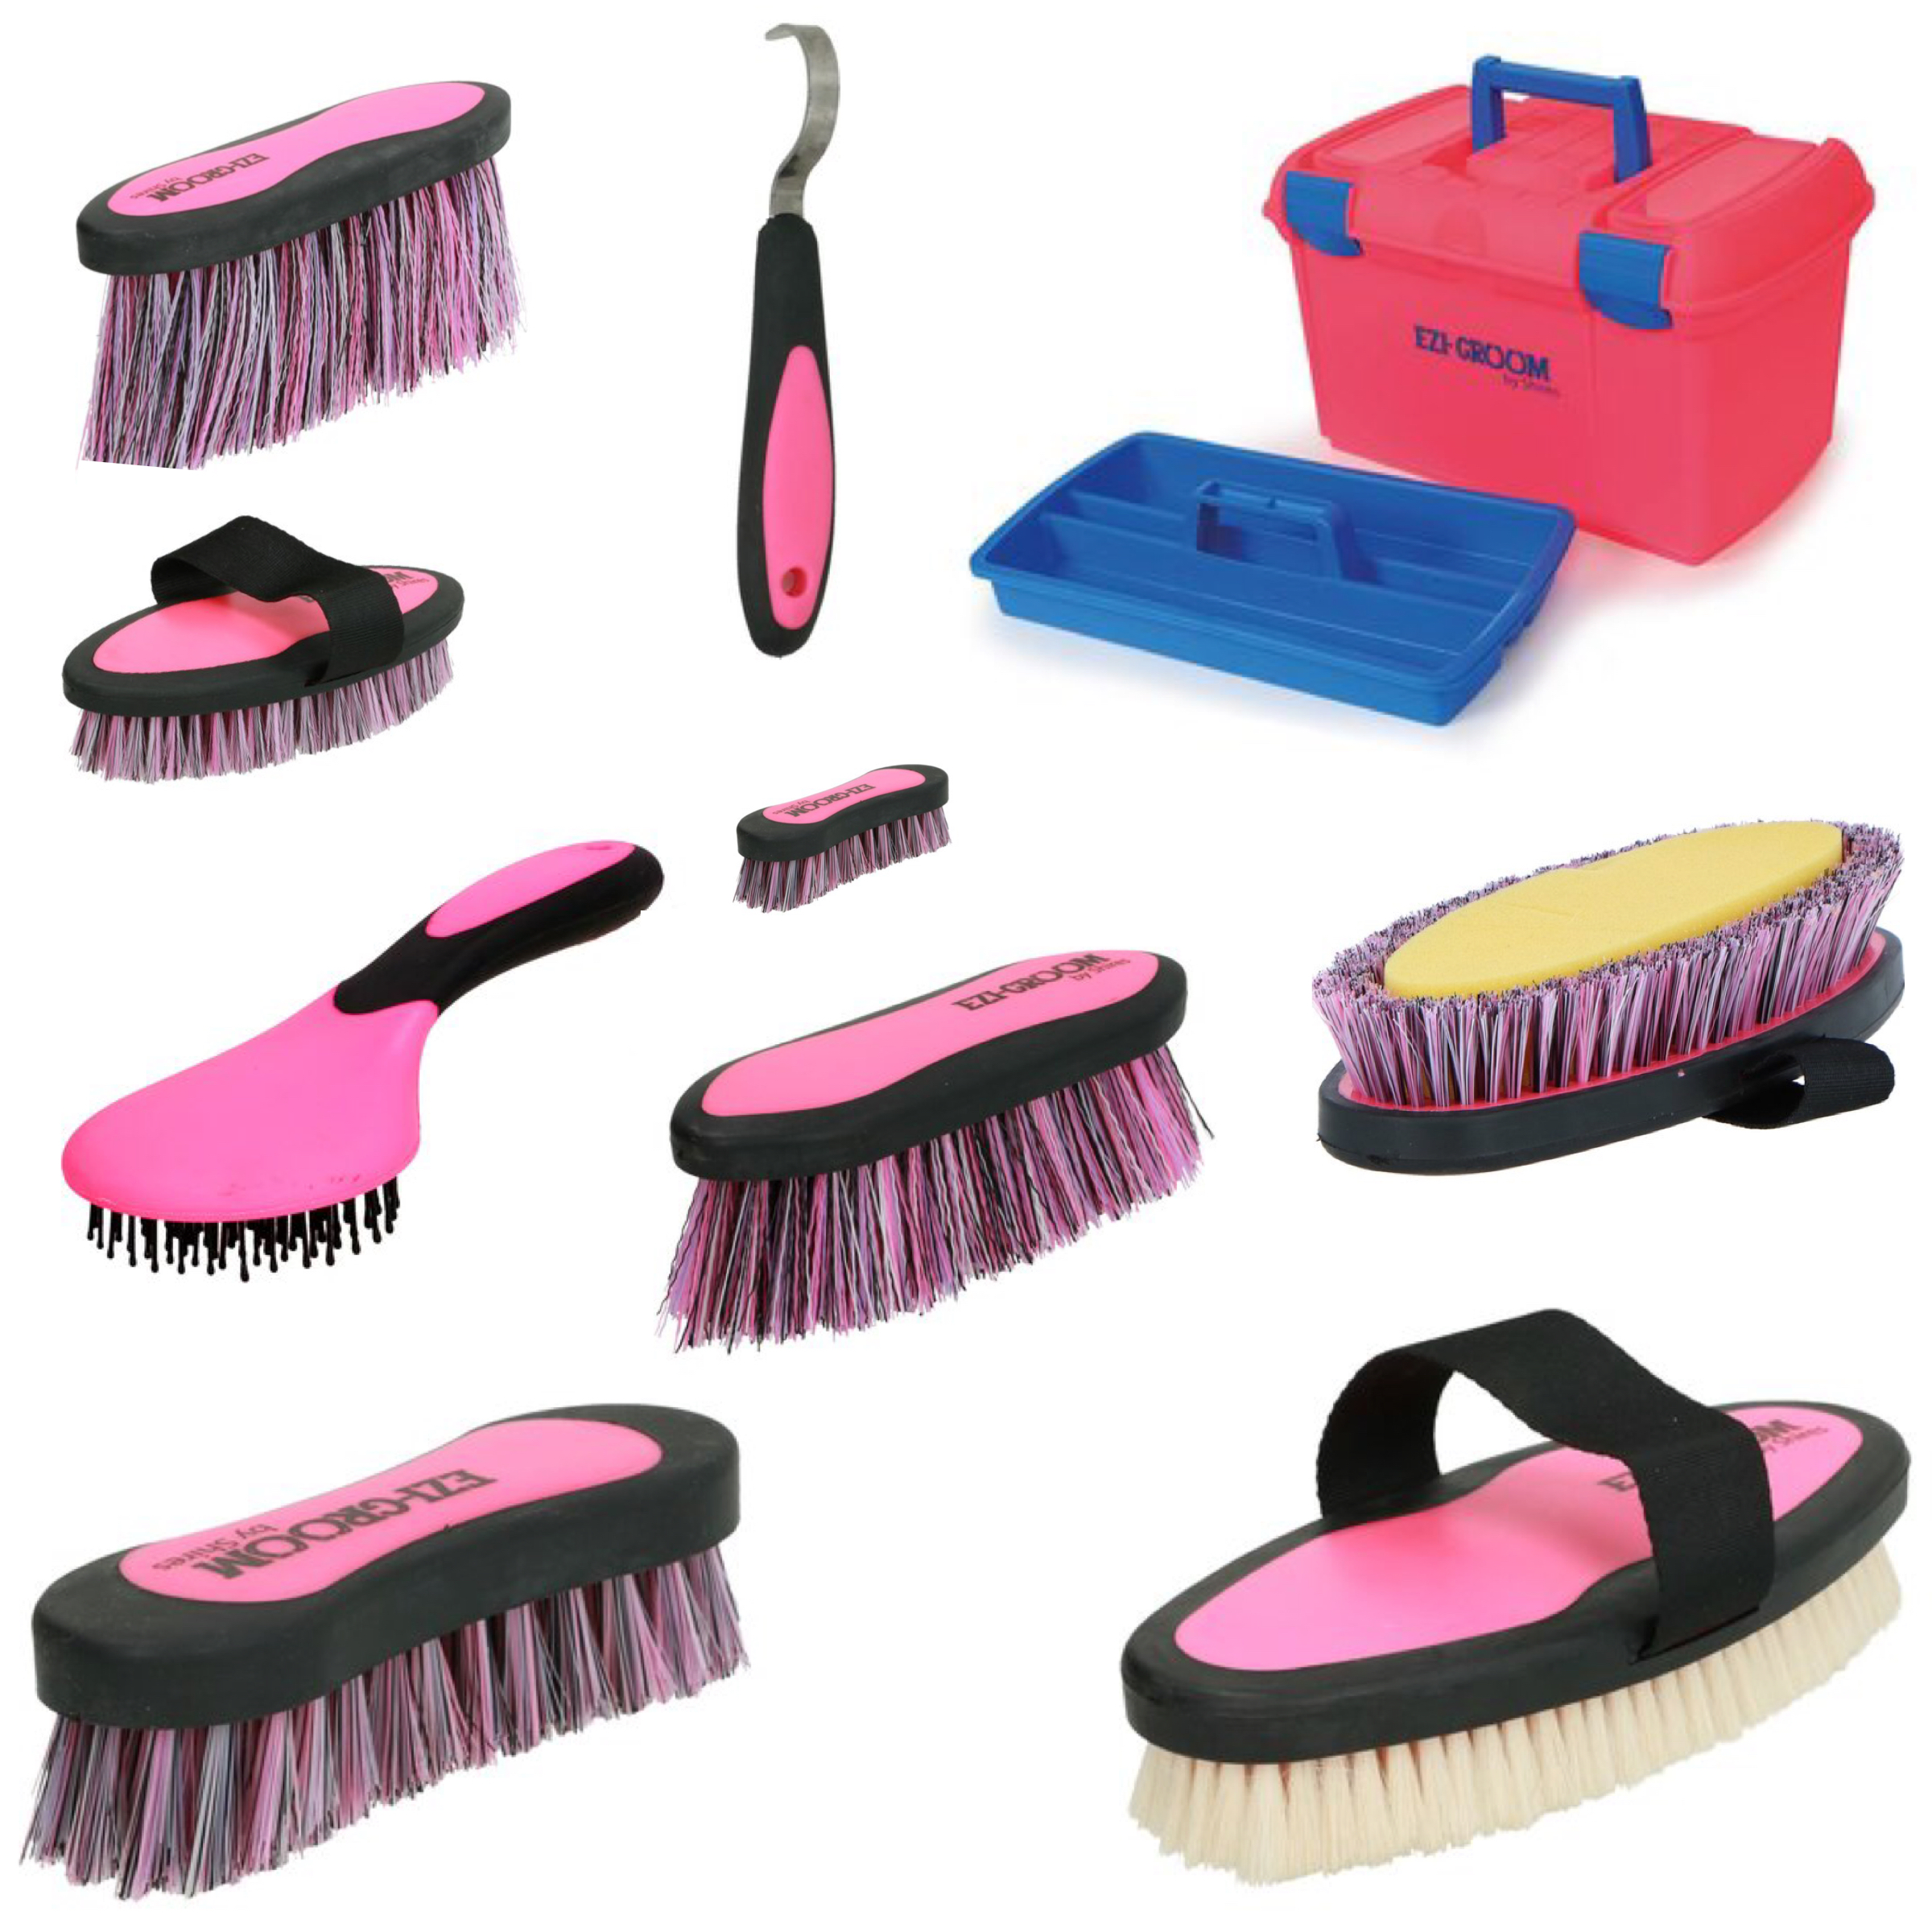 Ezi Groom Box & Brush Set - Pink